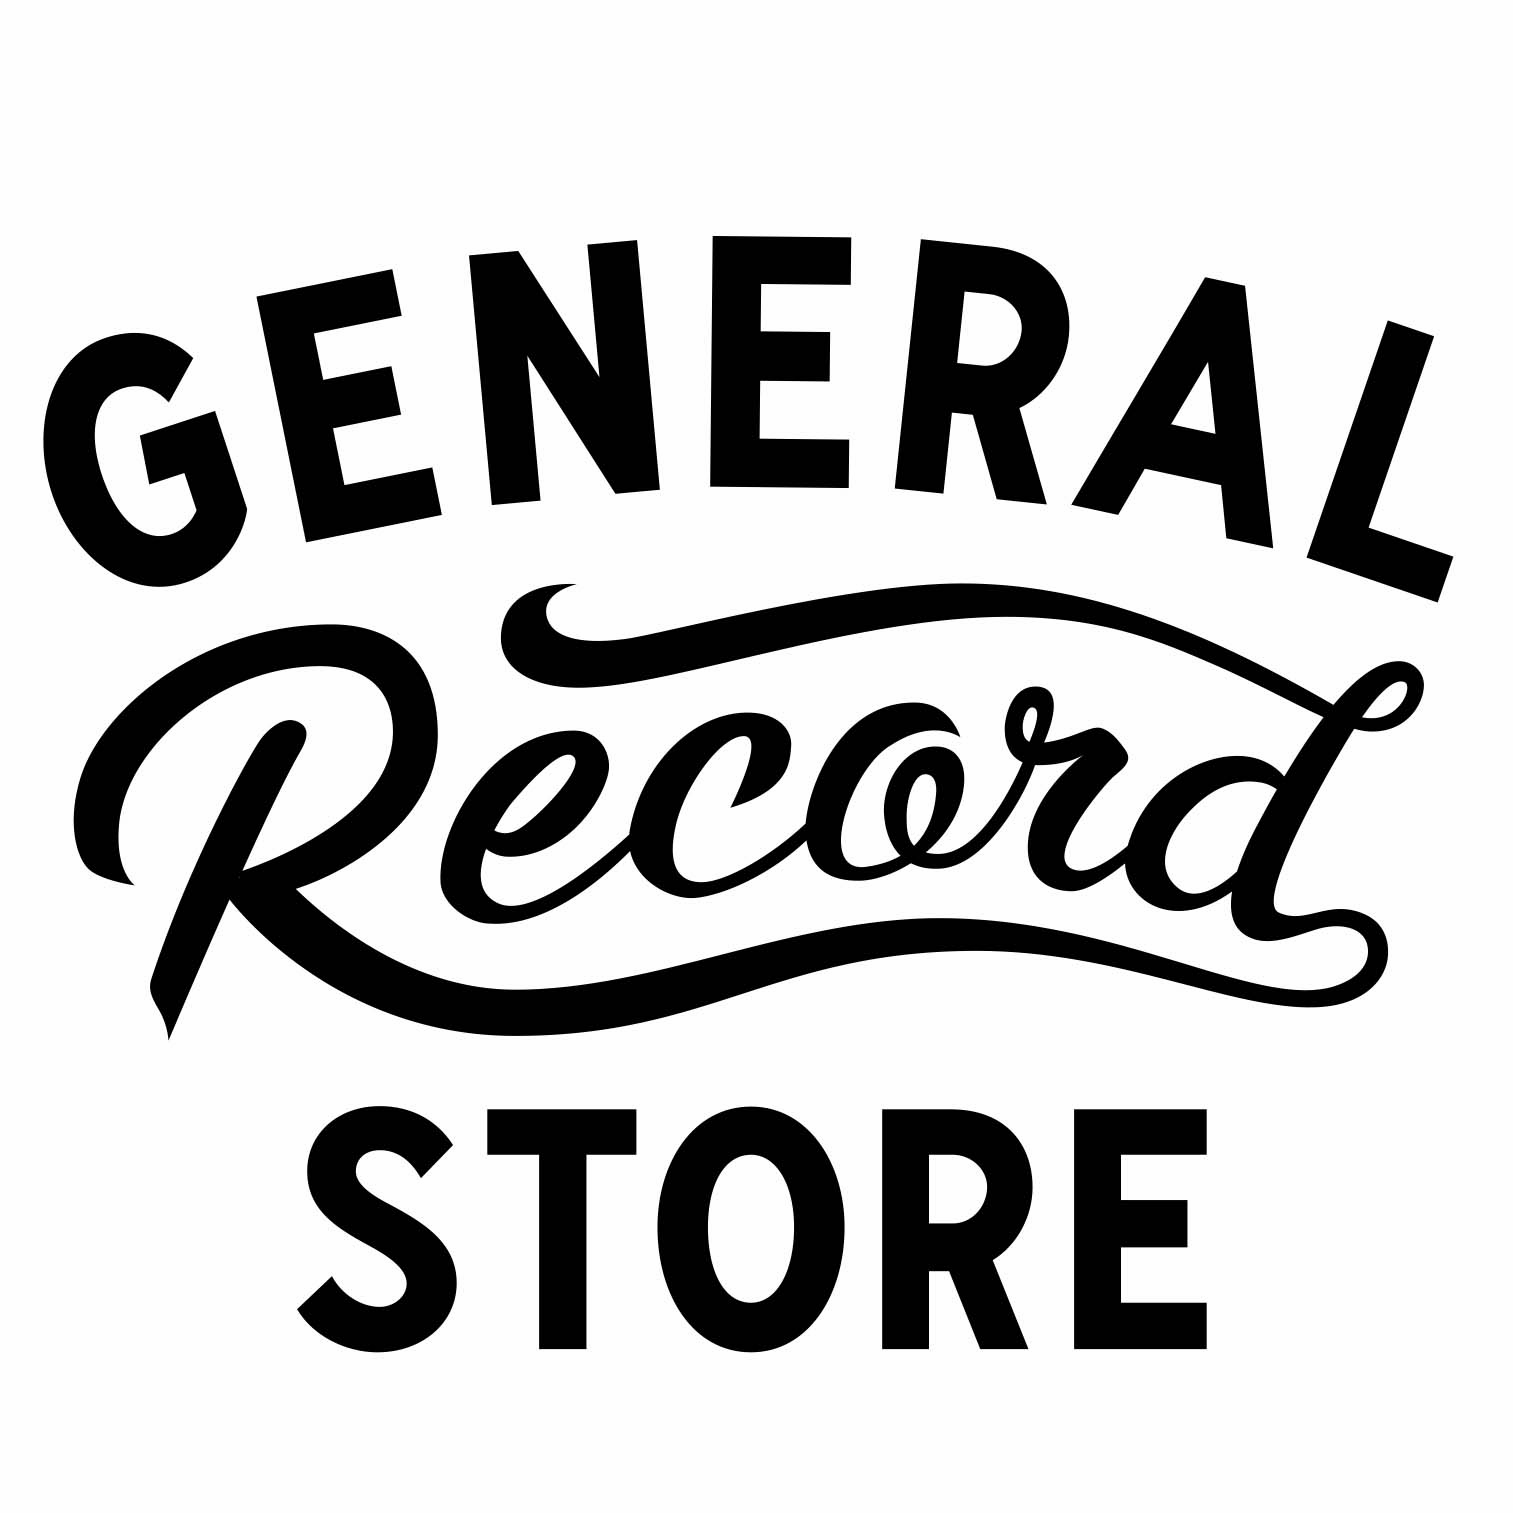 GENERAL RECORD STORE 79